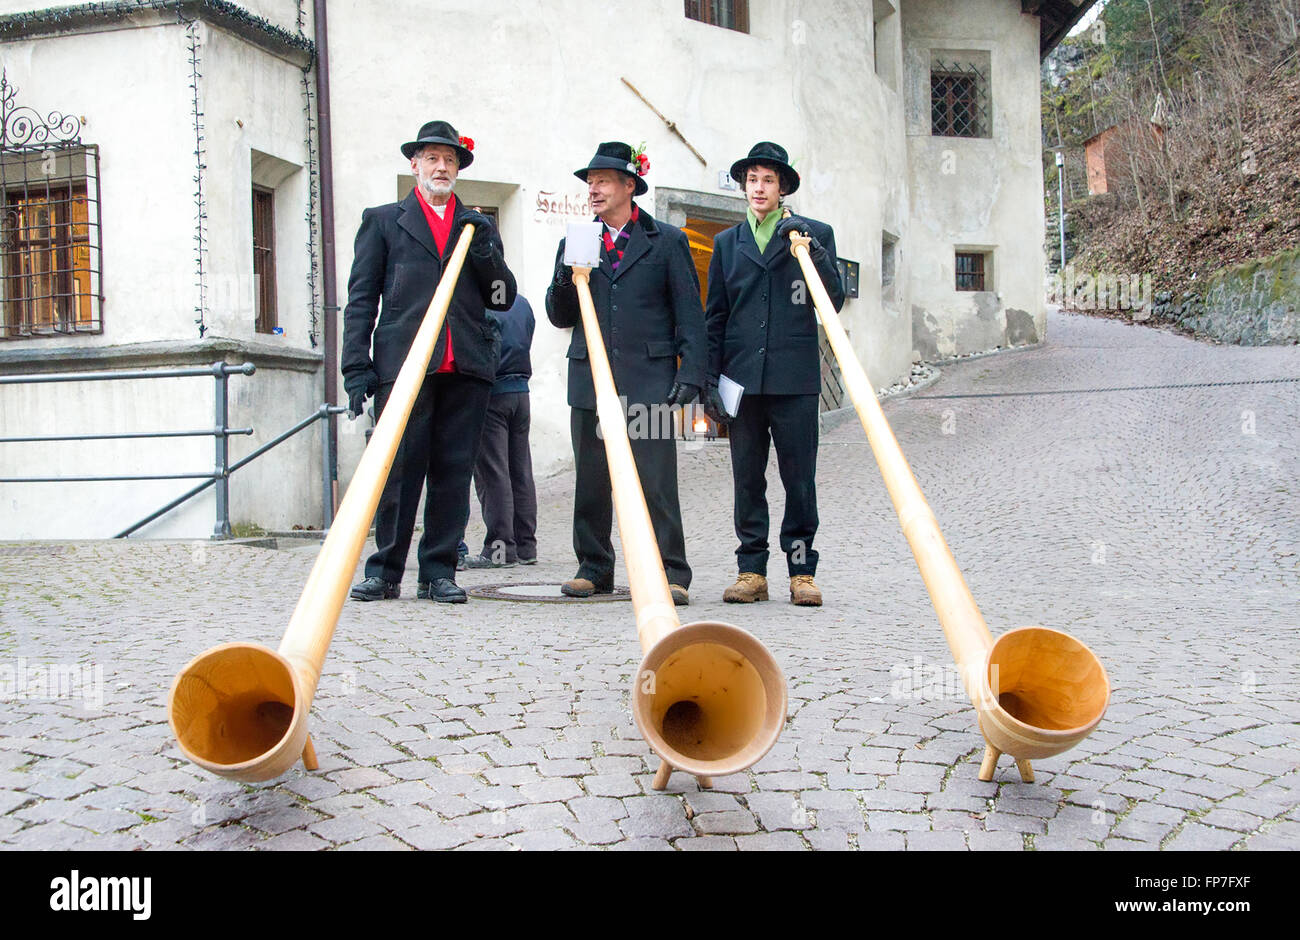 Alphorn players perform in the historic center of Brunico - Stock Image